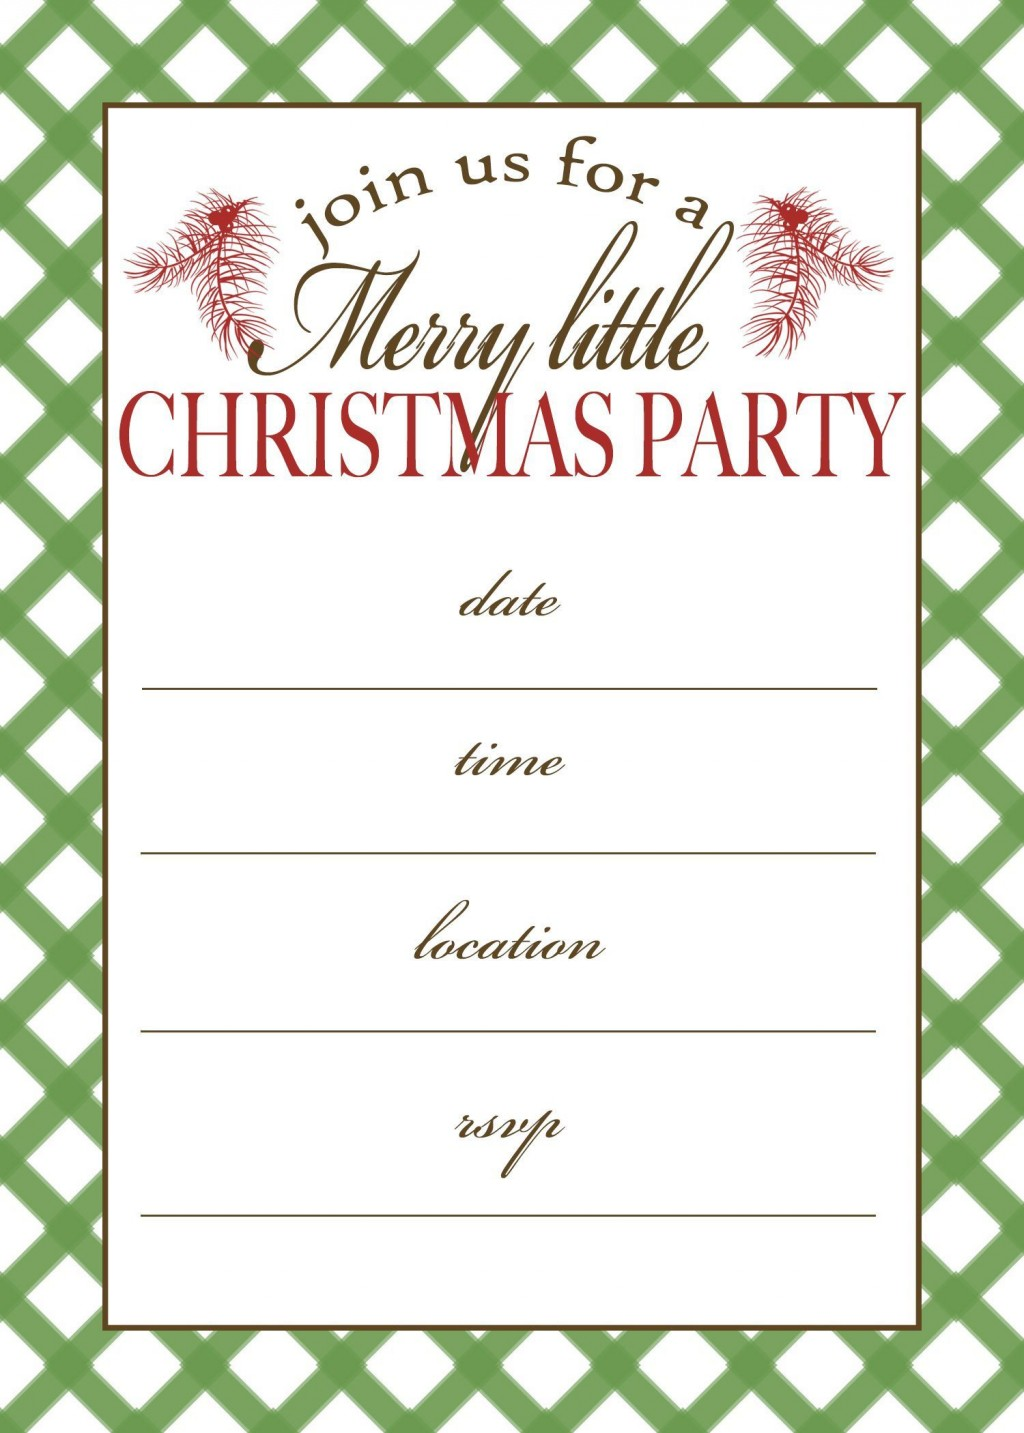 002 Fascinating Free Holiday Party Invitation Template For Word Photo Large